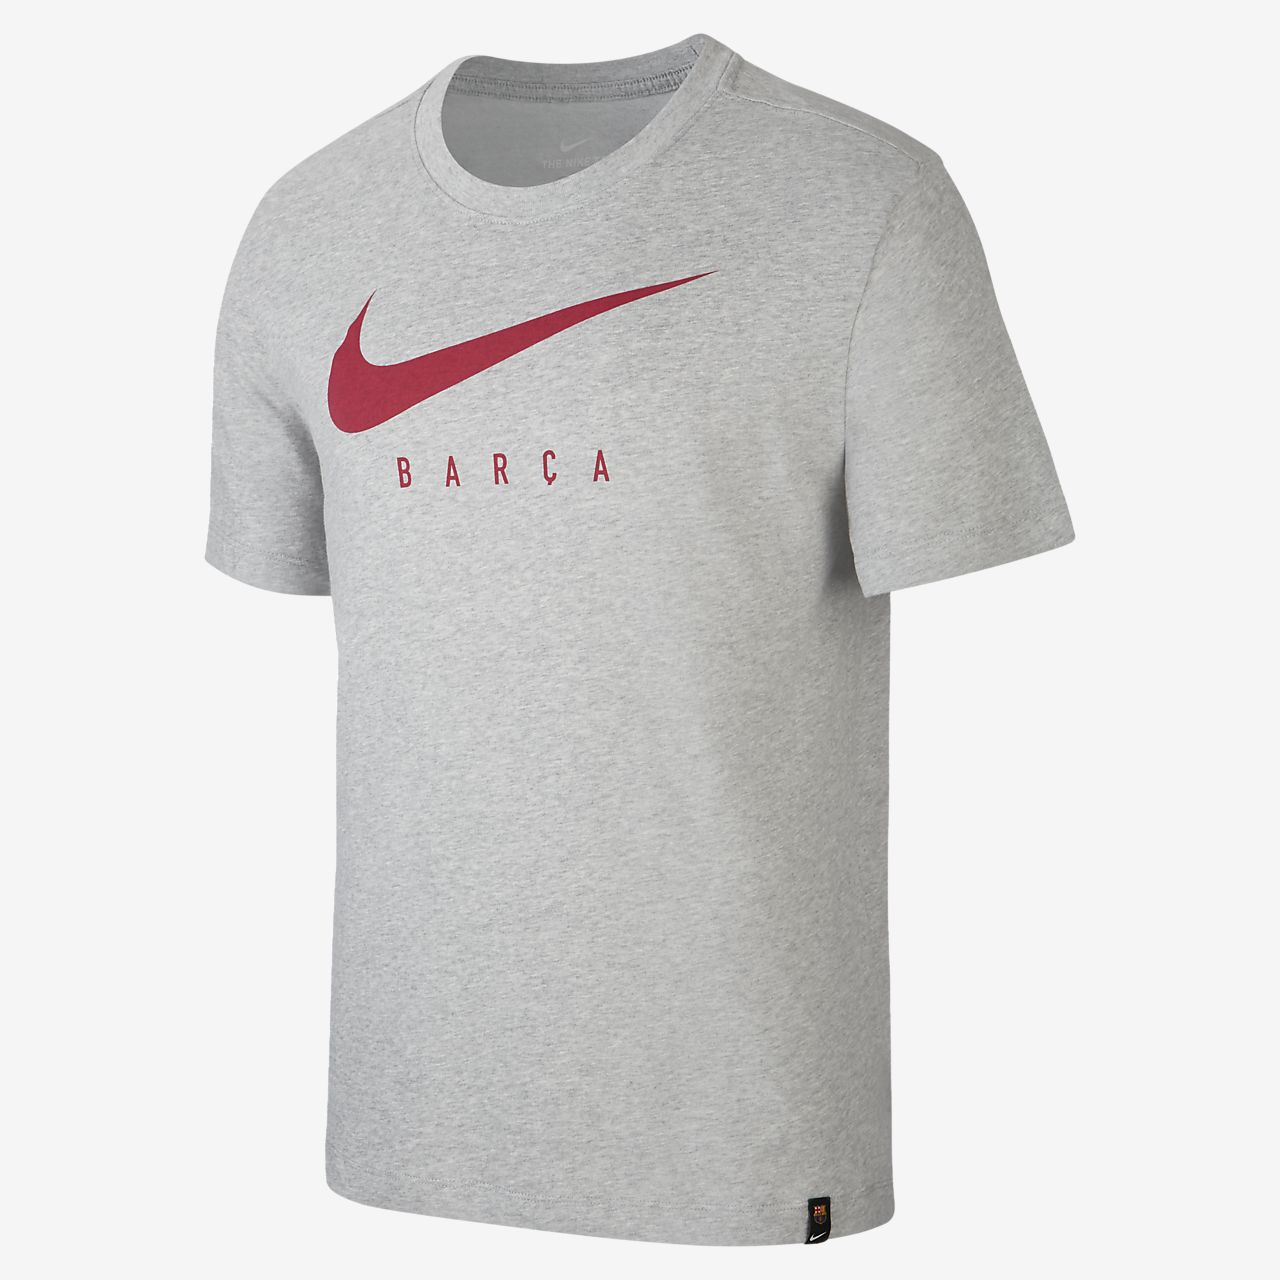 Men's Clothing Provided Mens Nike Dri-fit Football T Shirt Size Small Buy One Get One Free